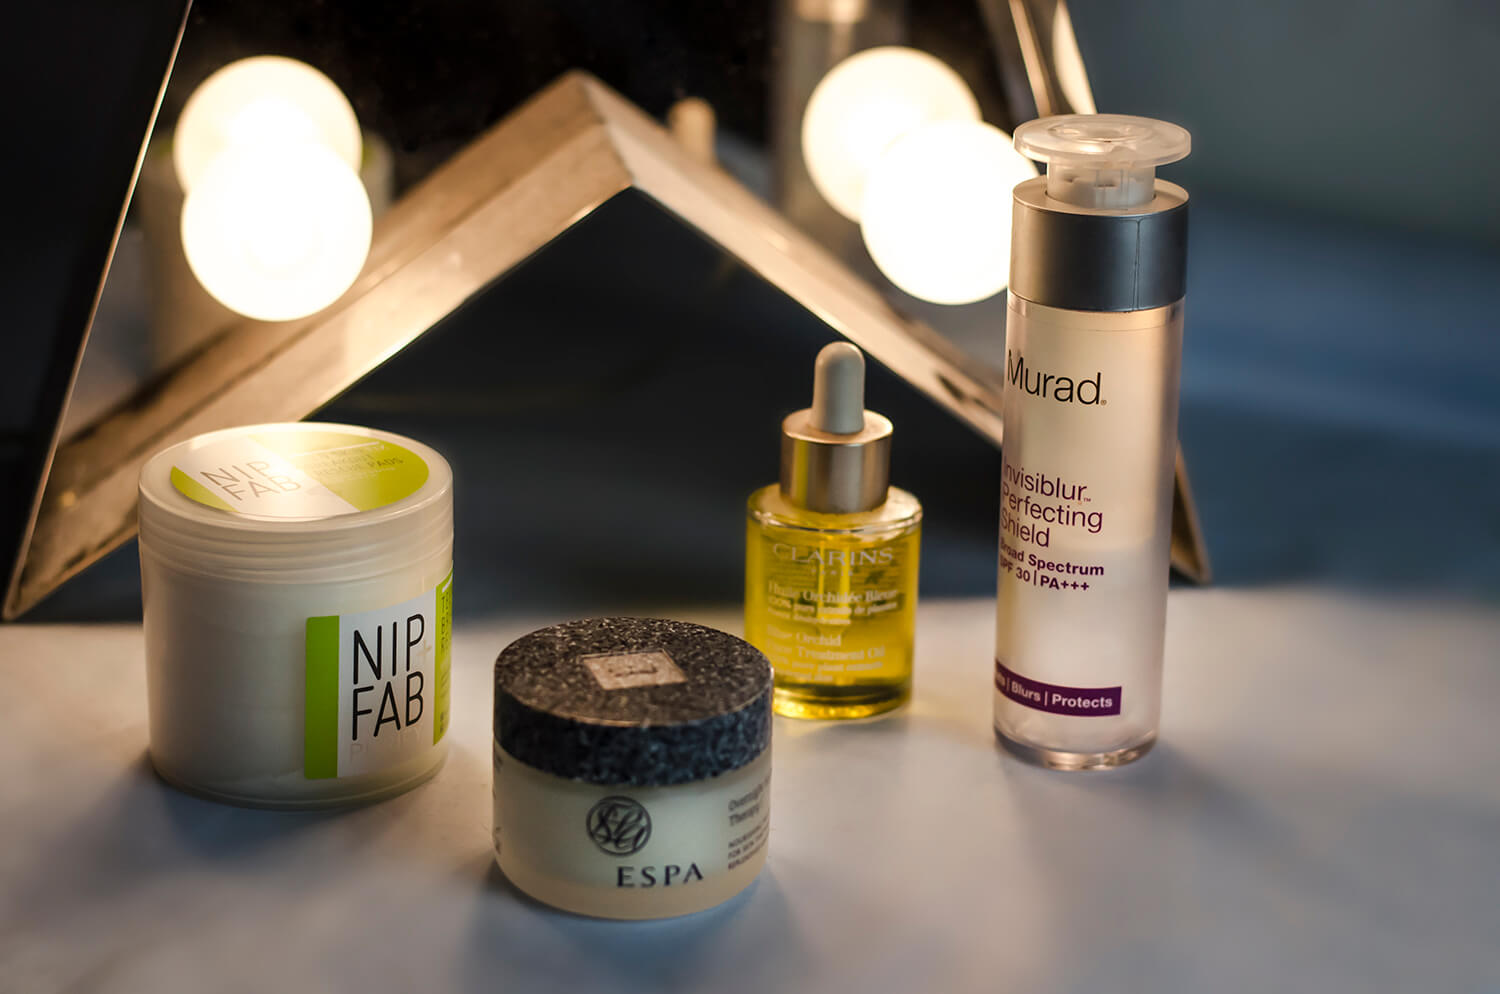 Products for autumn skin dryness